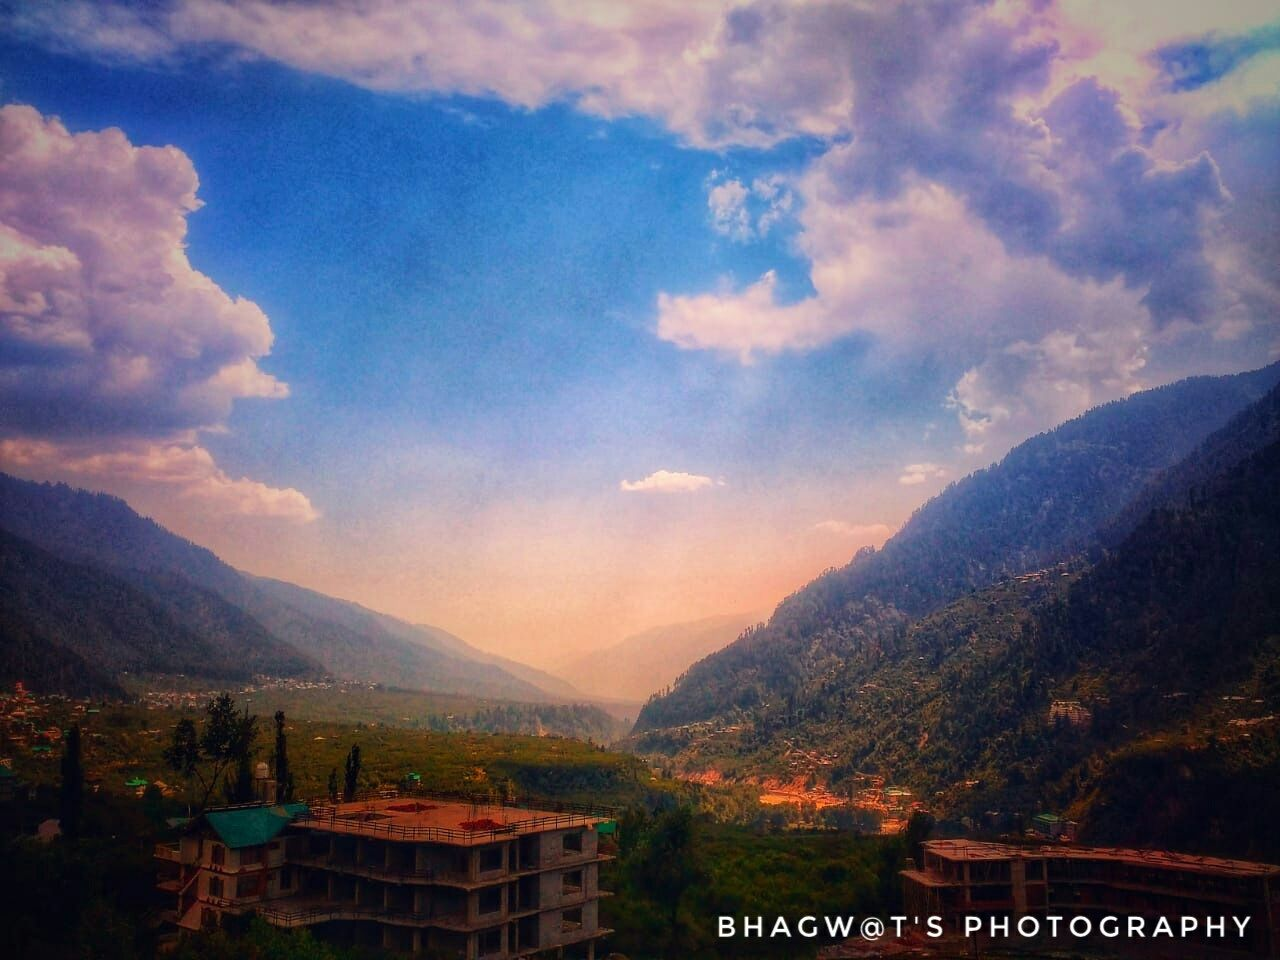 Photo of Himachal Pradesh By Bakul Bhagwat Sood